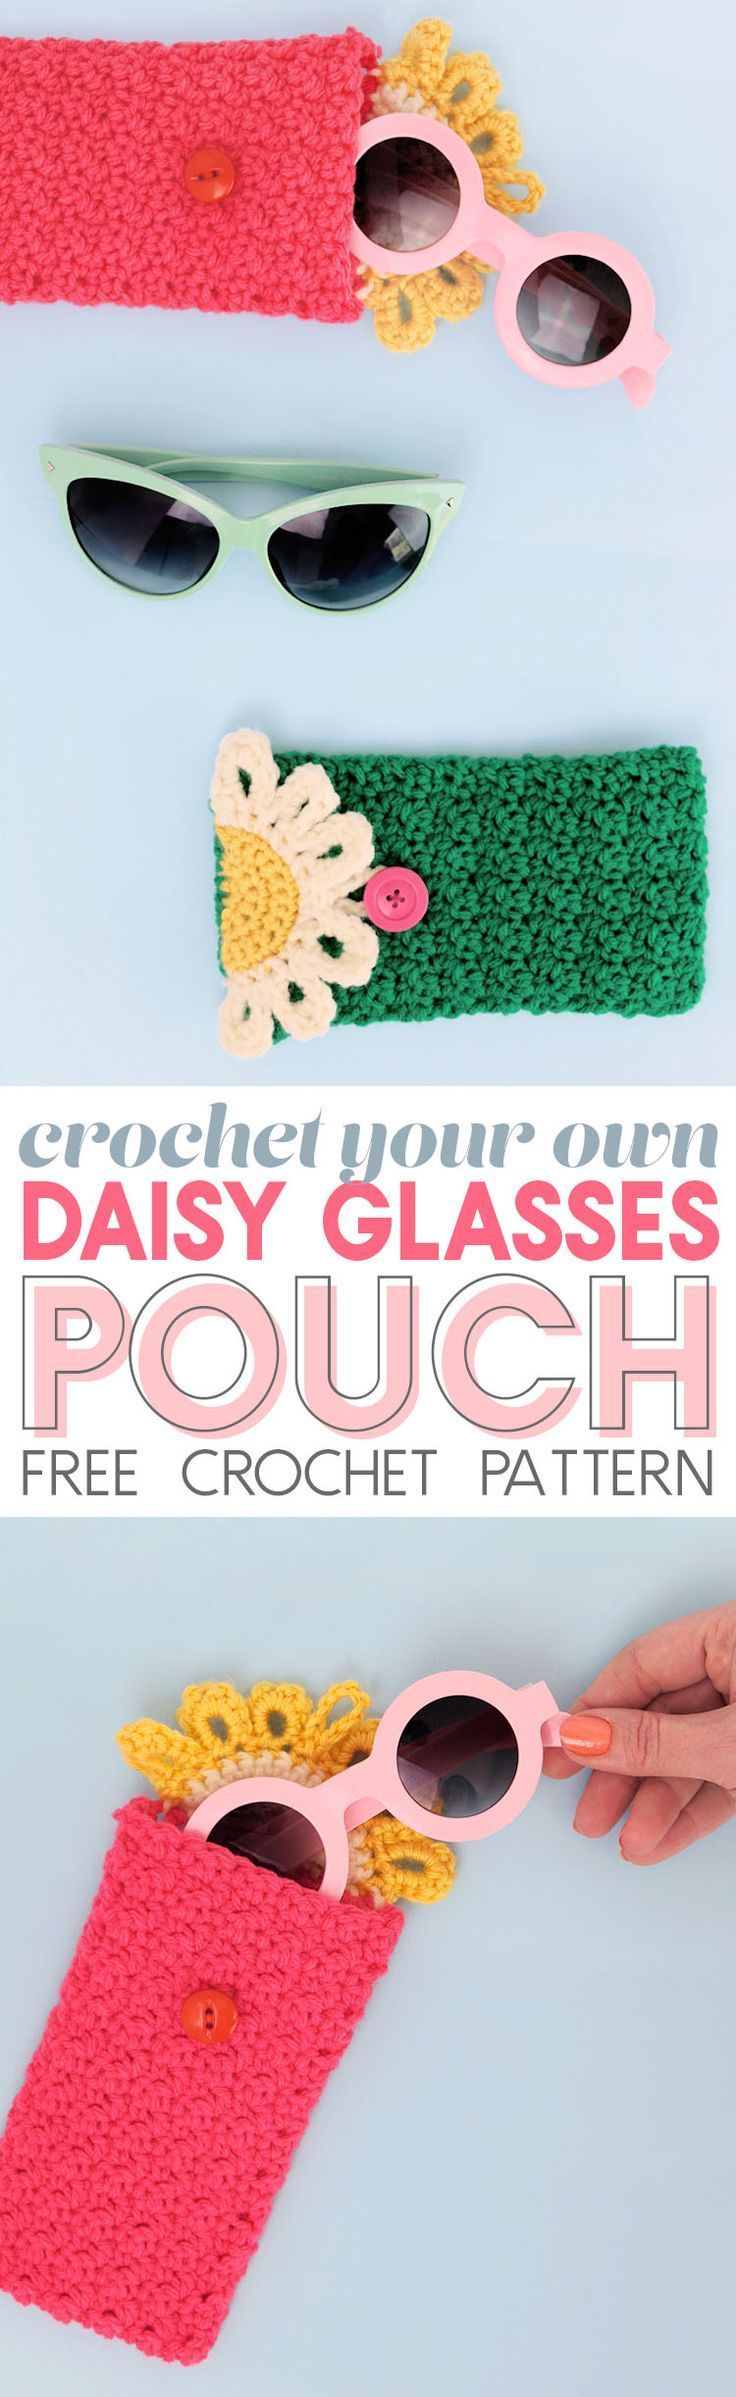 The Happy Daisy Crochet Glasses Pouch - Free Pattern